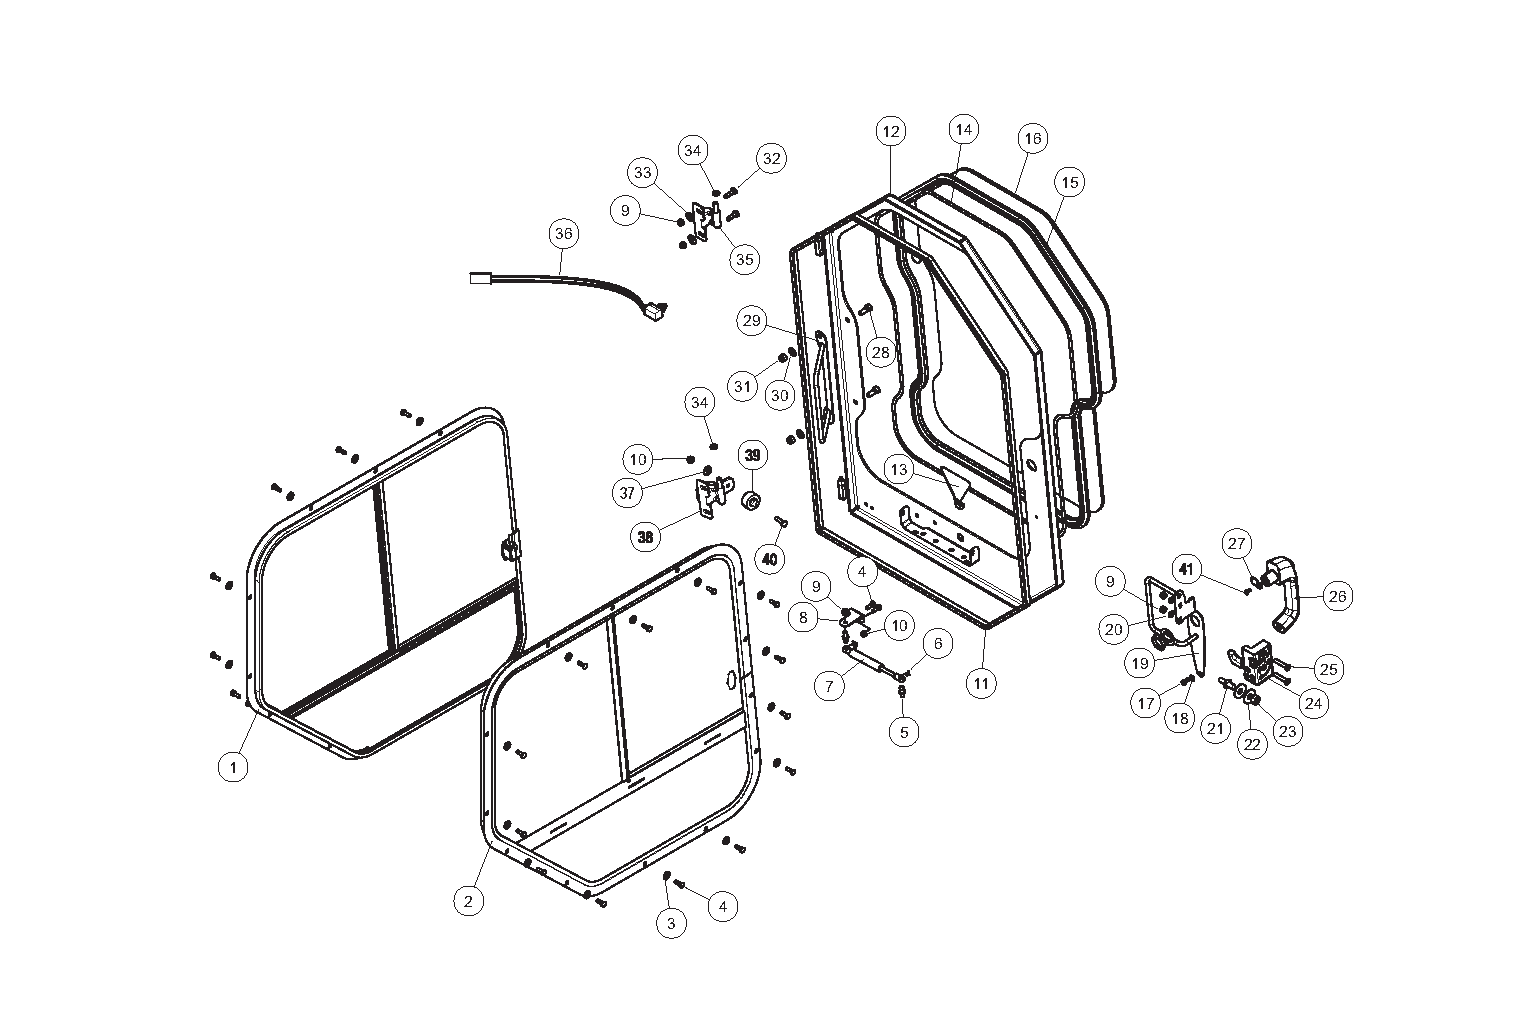 Diagram 07-A Cab Doors And Windows - ROPS - Optional